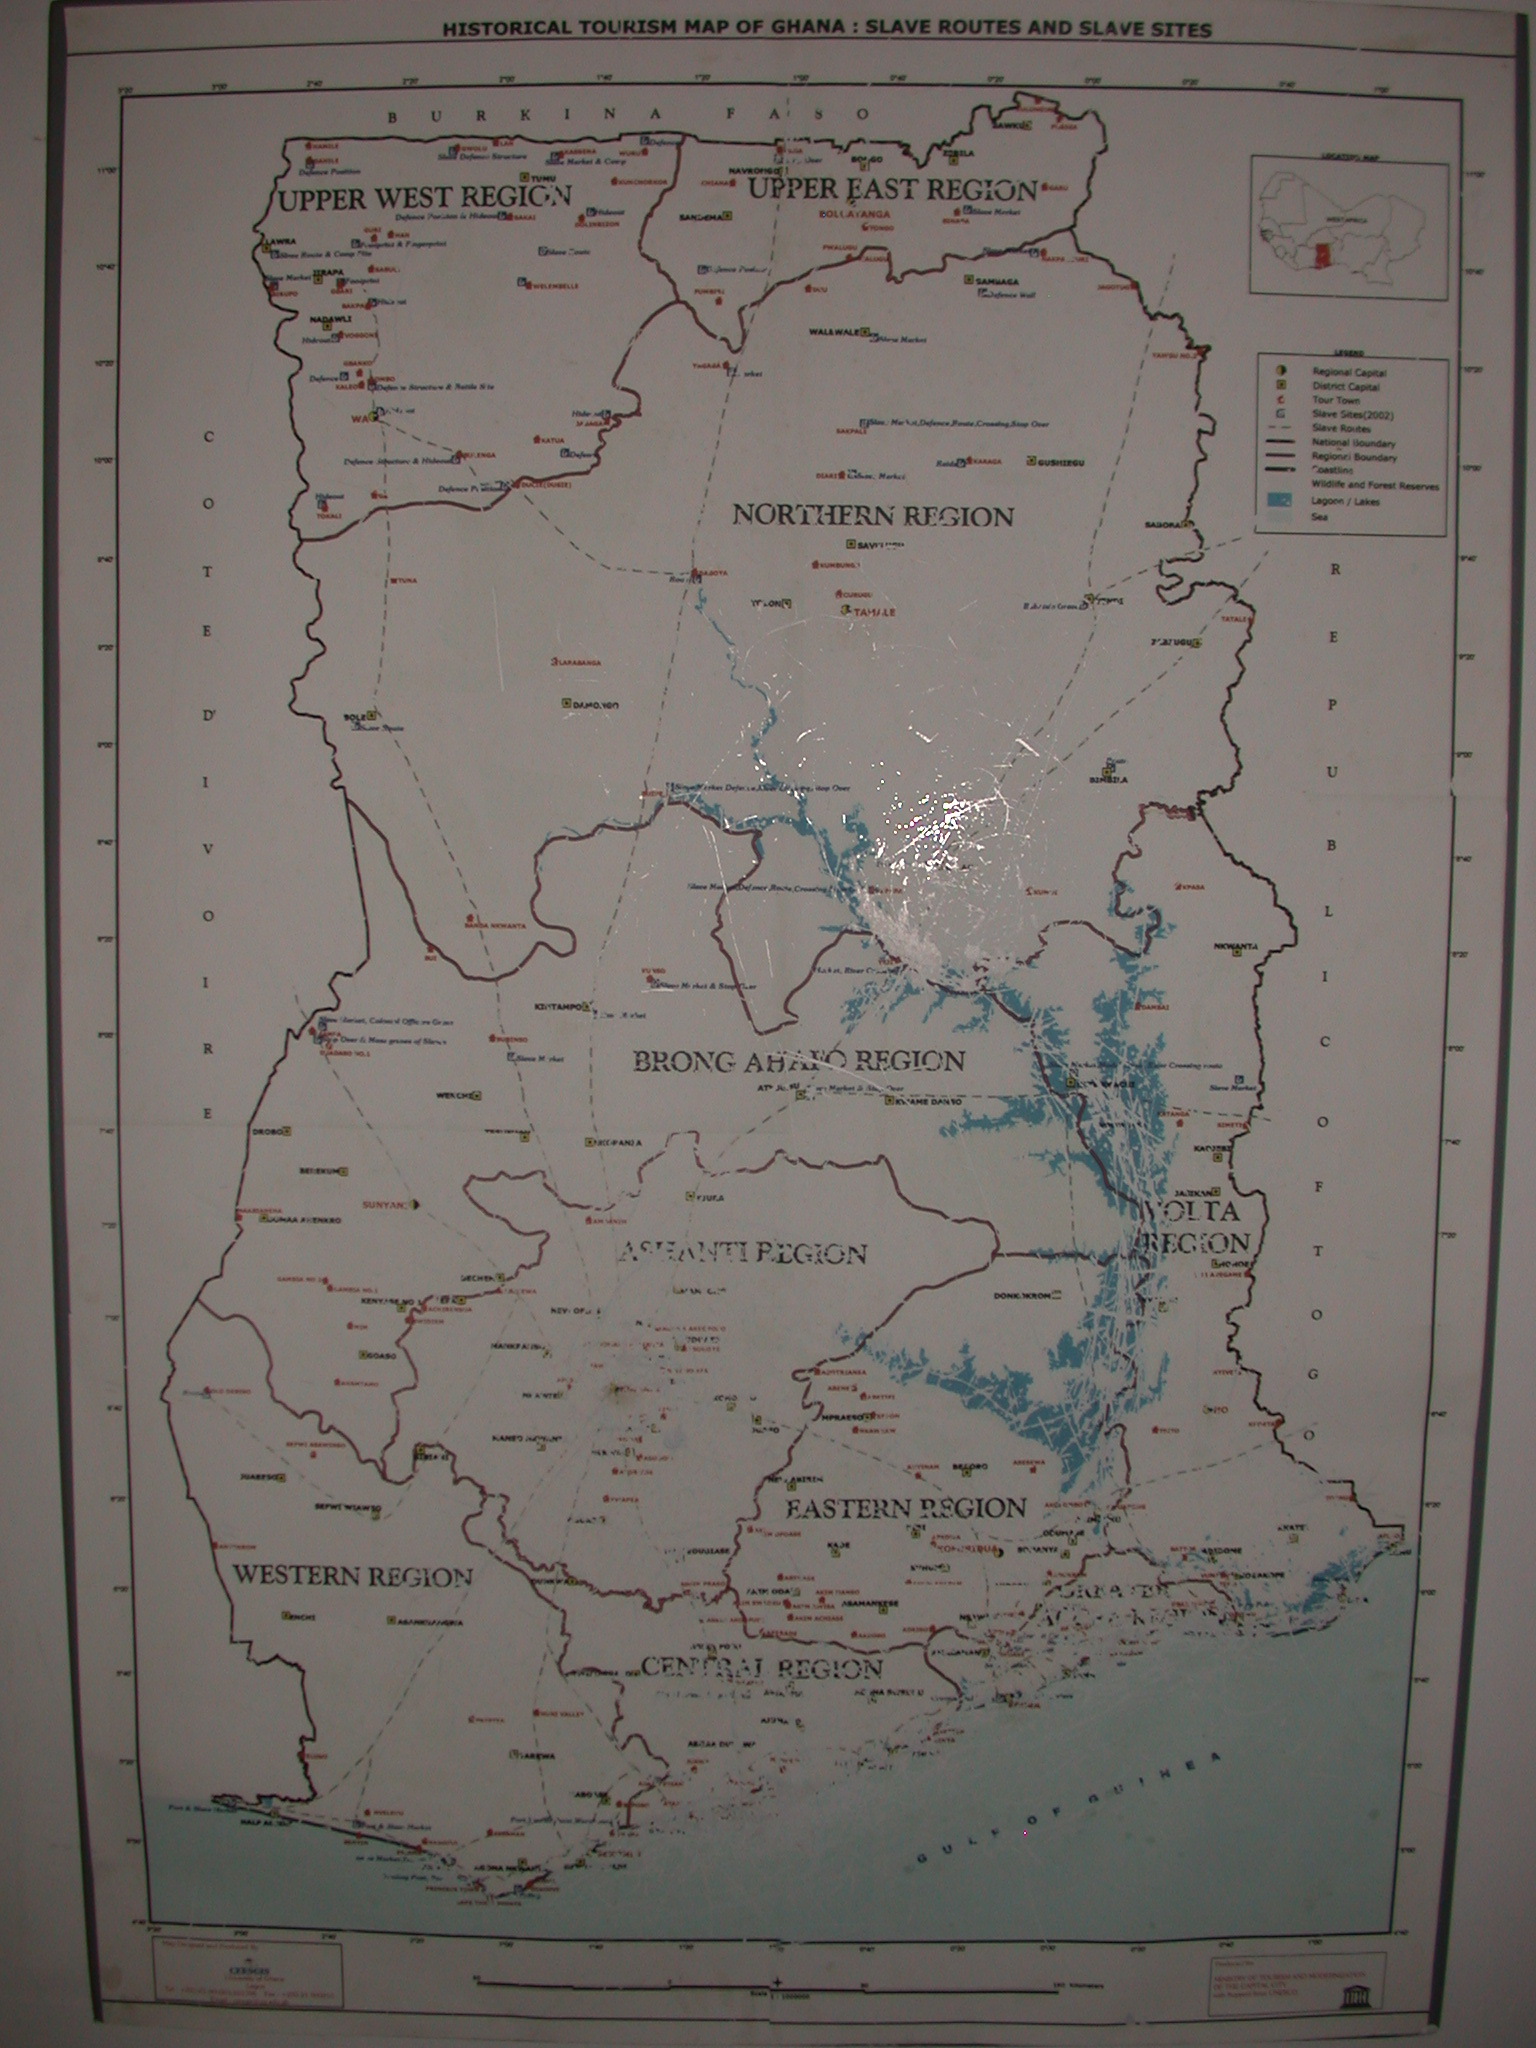 Map of Slave Routes and Slave Sites, National Museum, Accra, Ghana